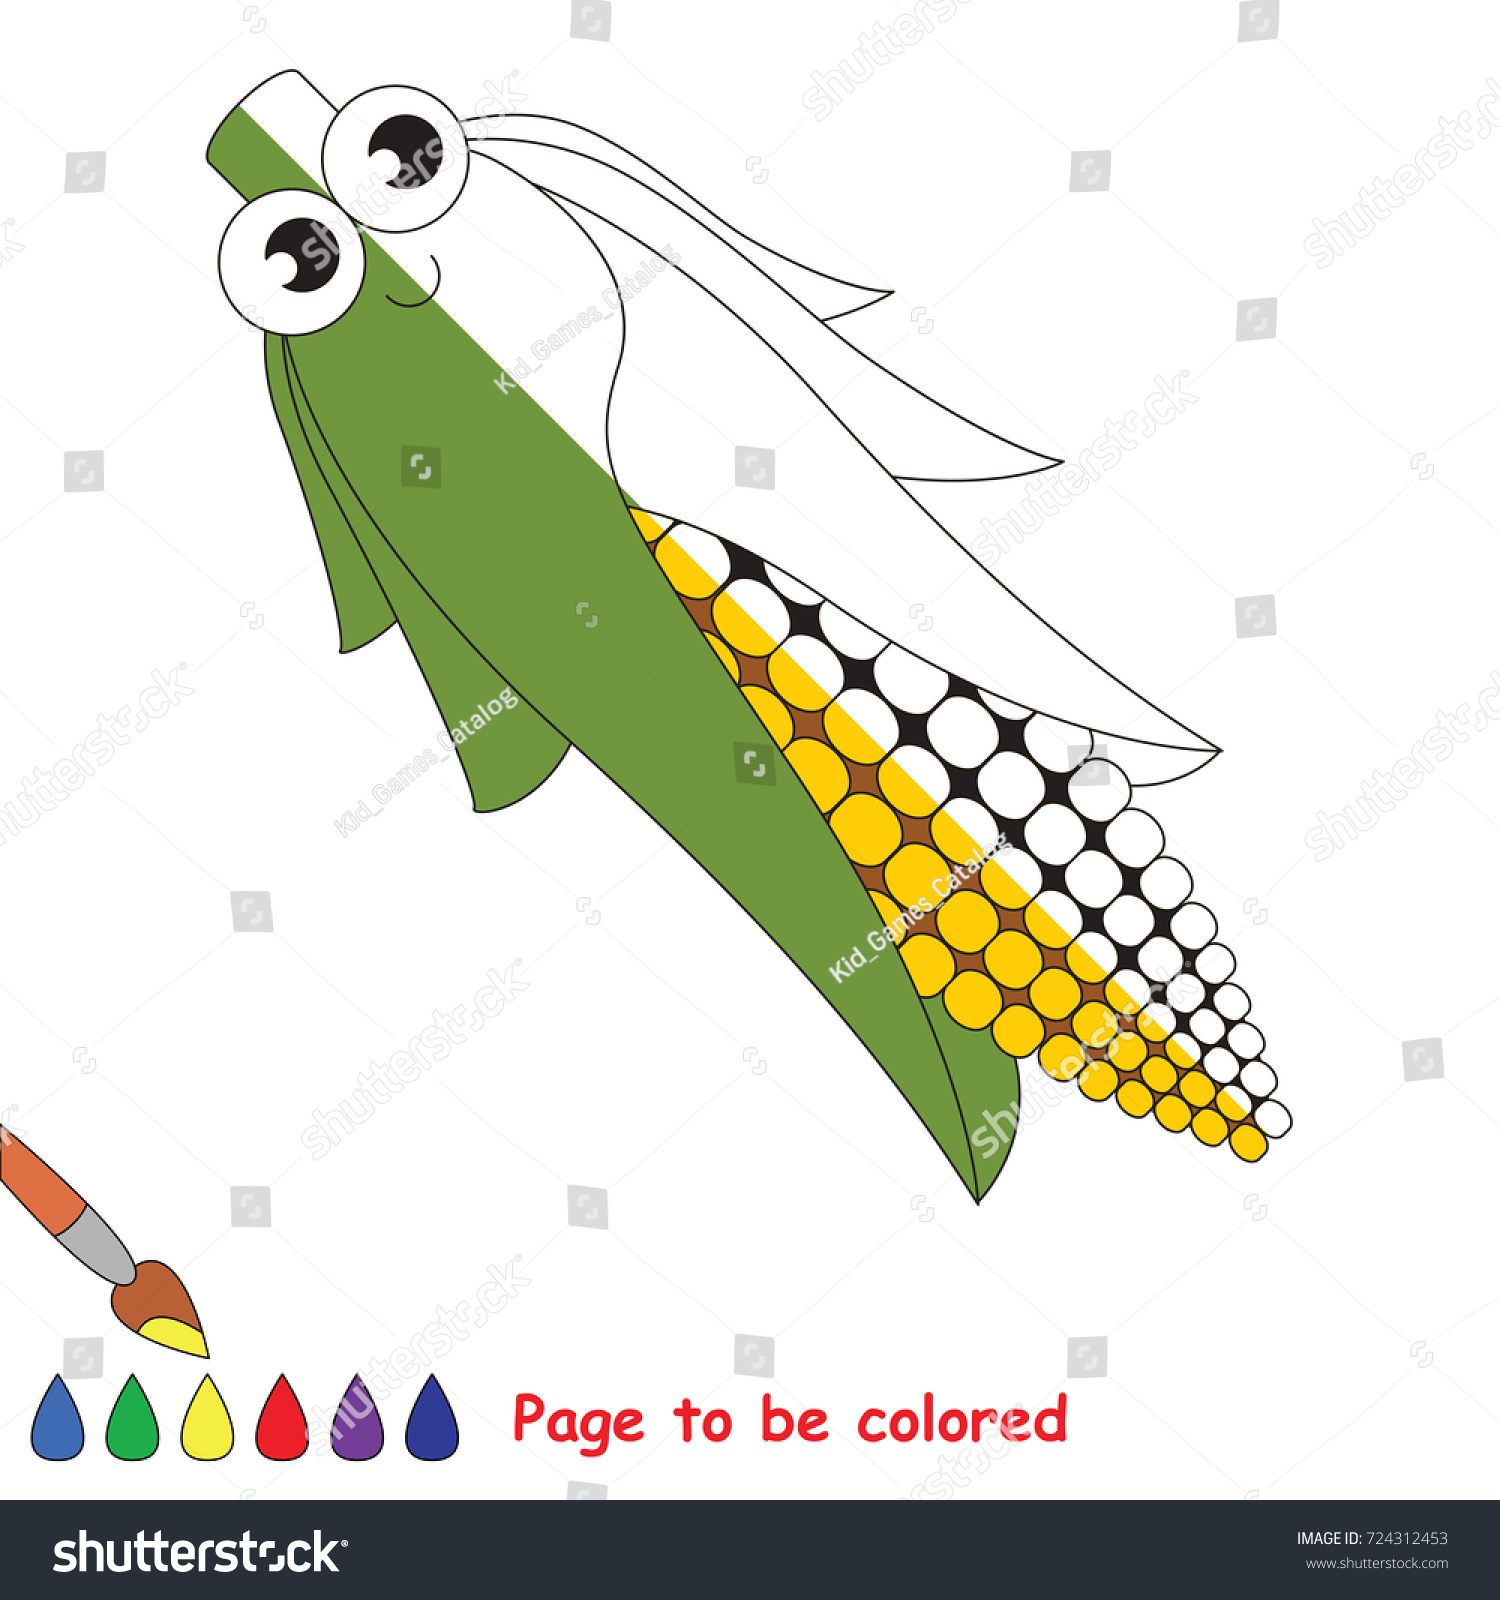 Funny Corn Maize Coloring Book Educate Stock Vector (2018) 724312453 ...